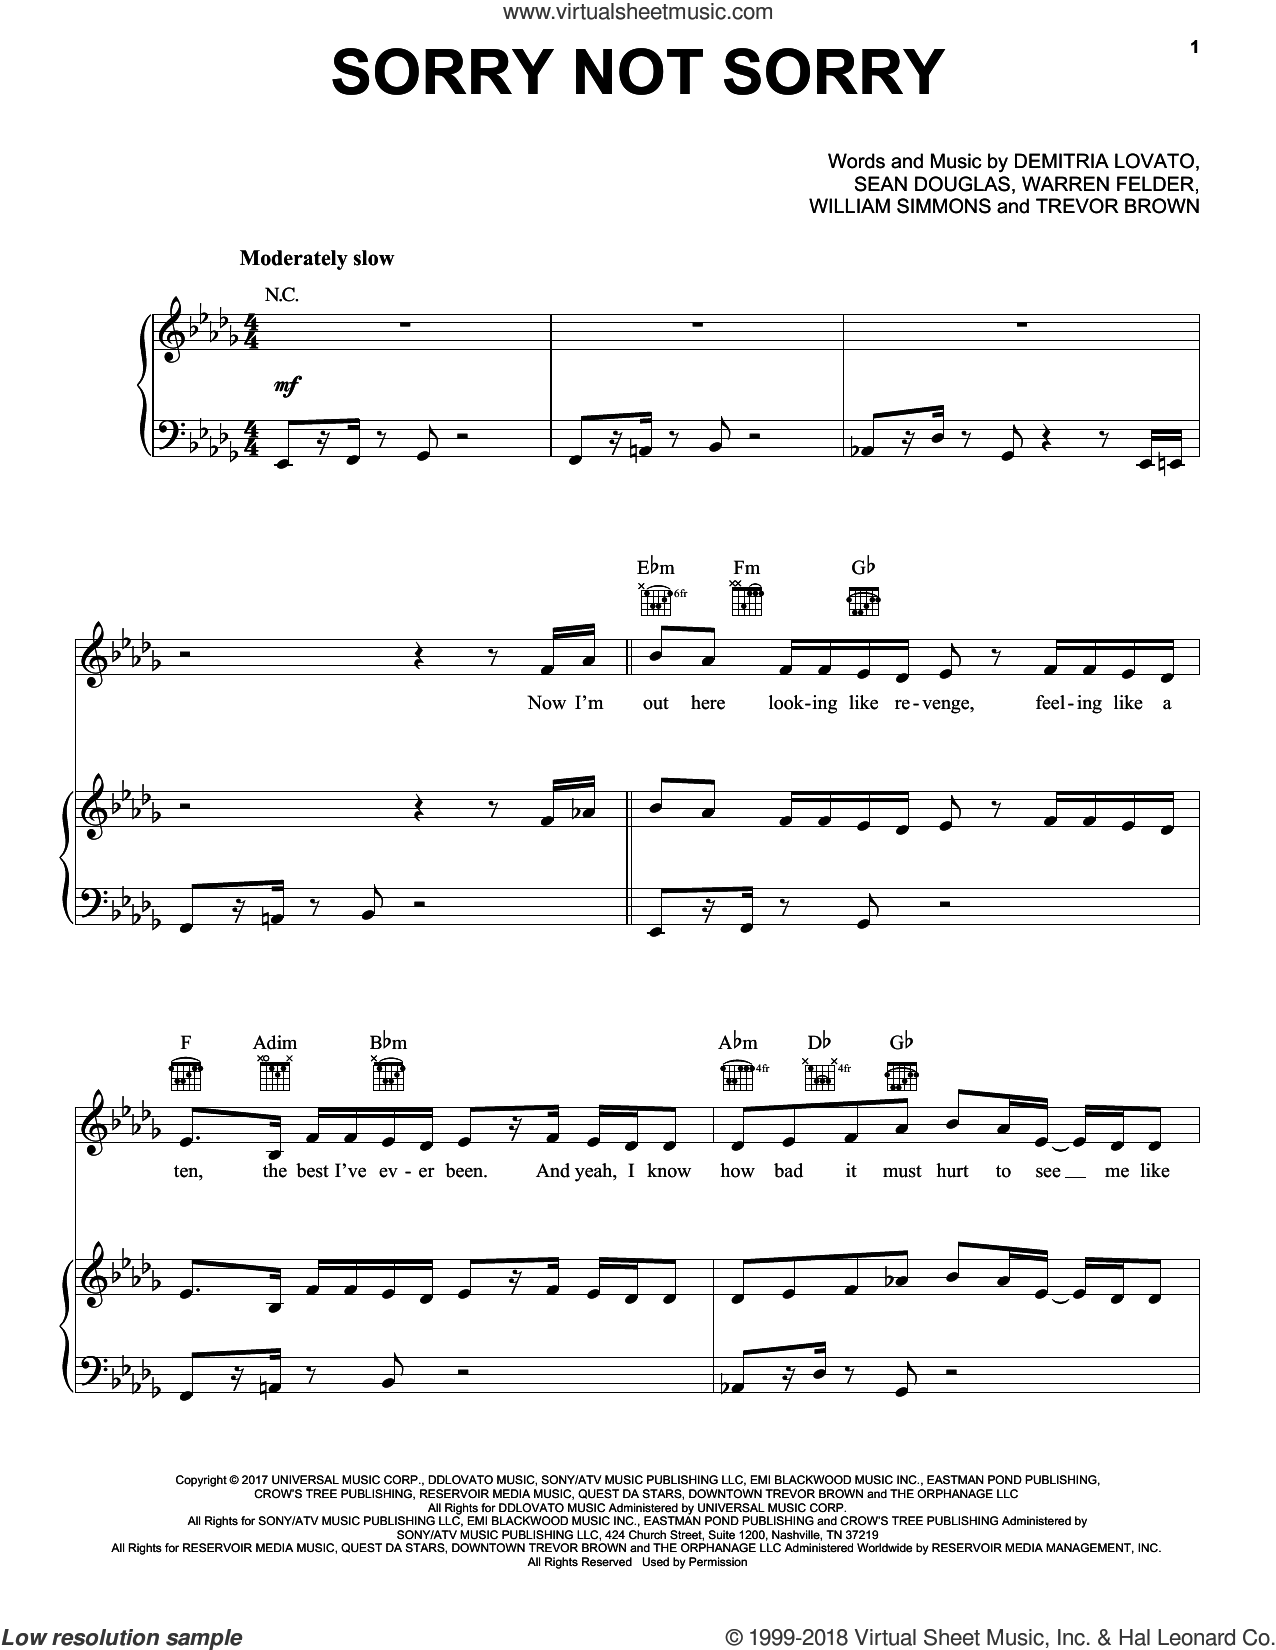 Sorry Not Sorry sheet music for voice, piano or guitar by Pentatonix, Demi Lovato, Sean Douglas, Trevor Brown, Warren Felder and William Simmons, intermediate skill level